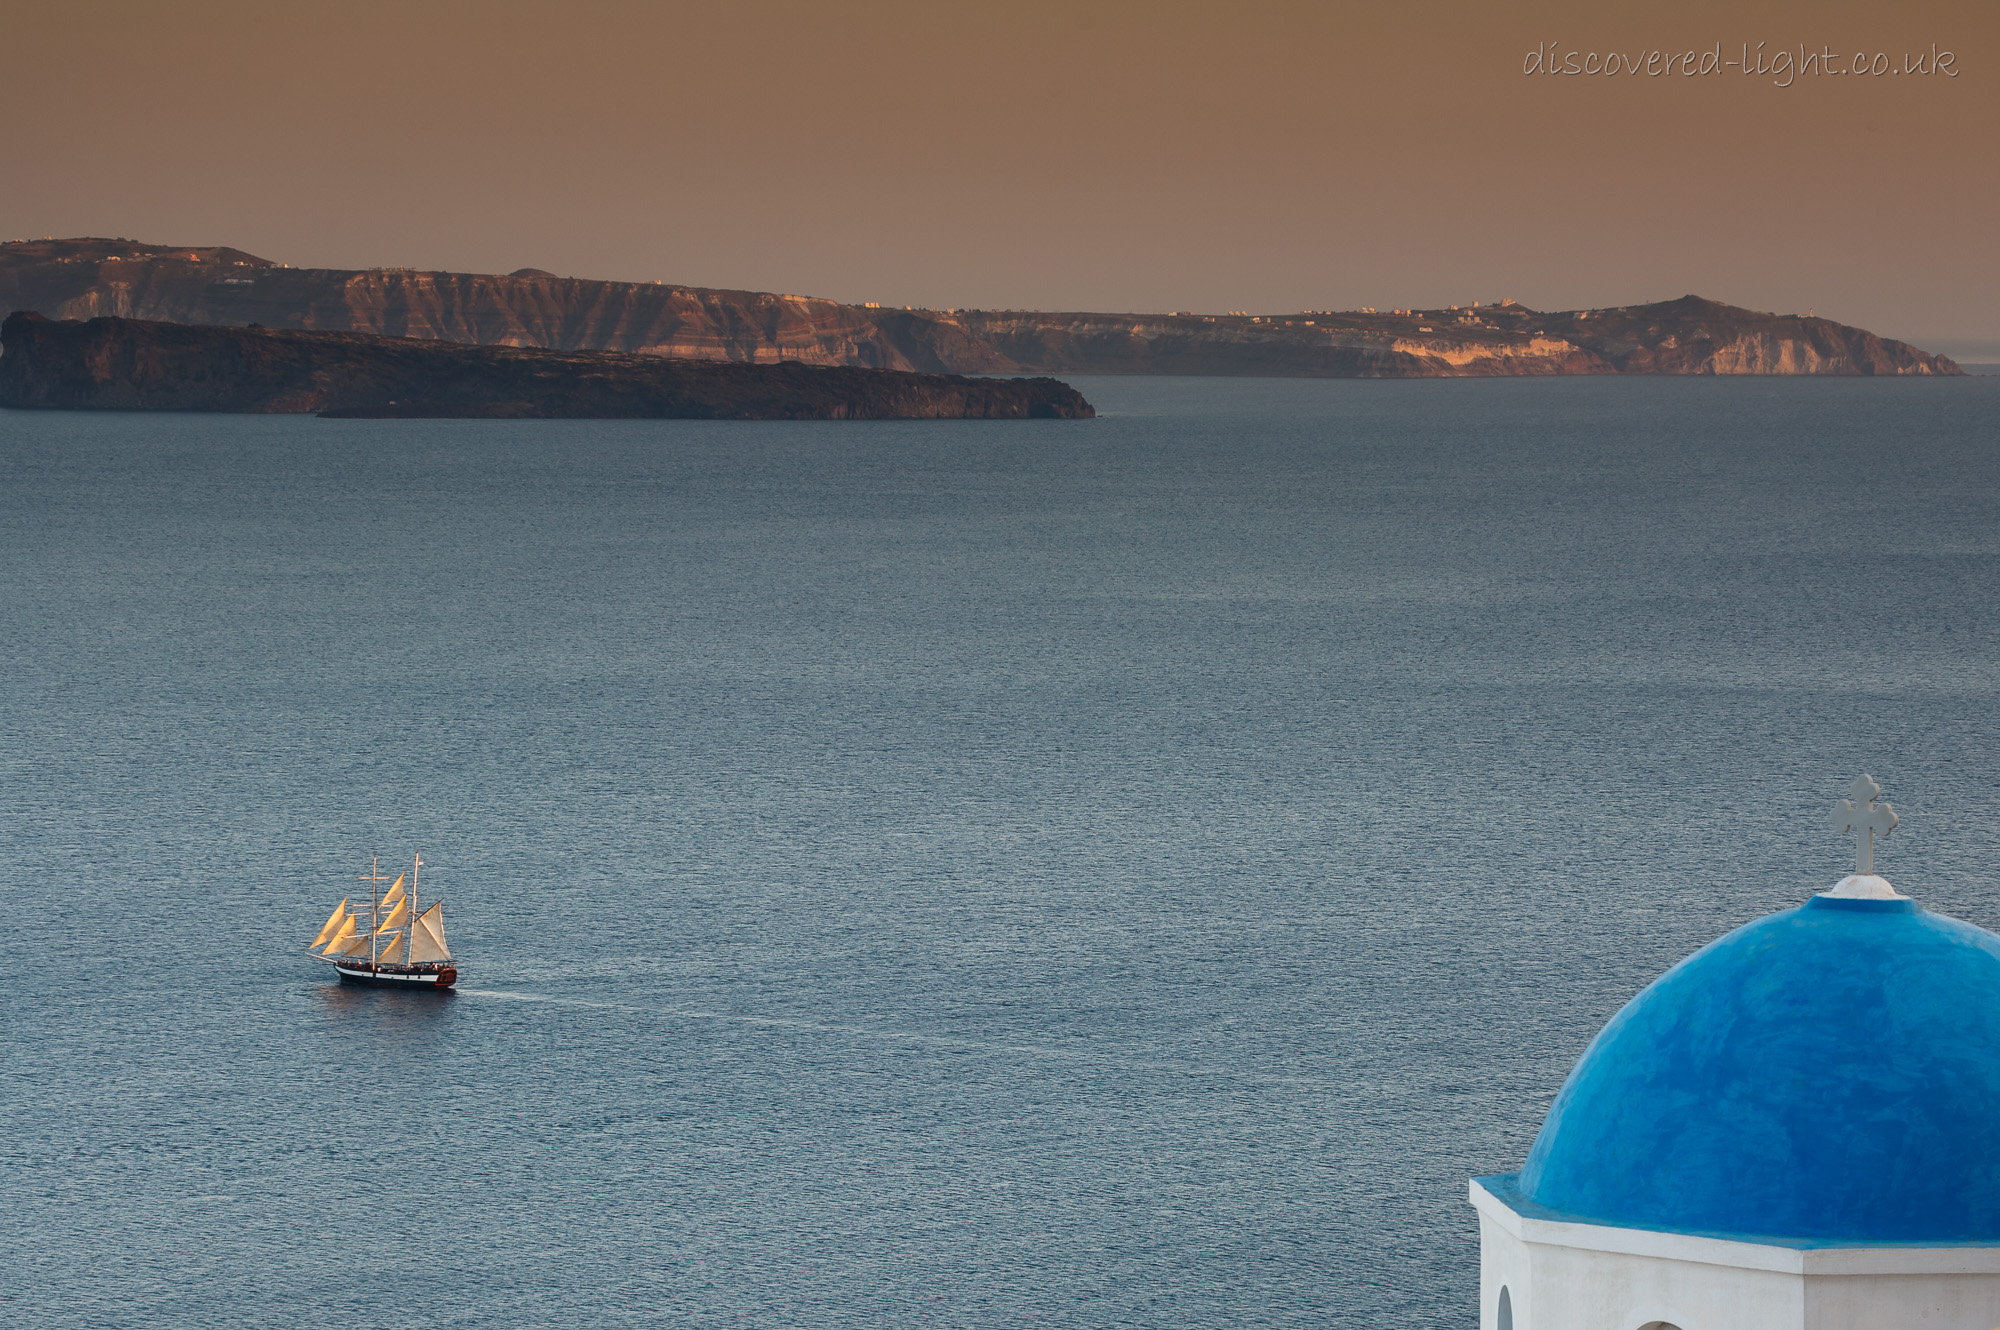 Sailing ship and blue dome